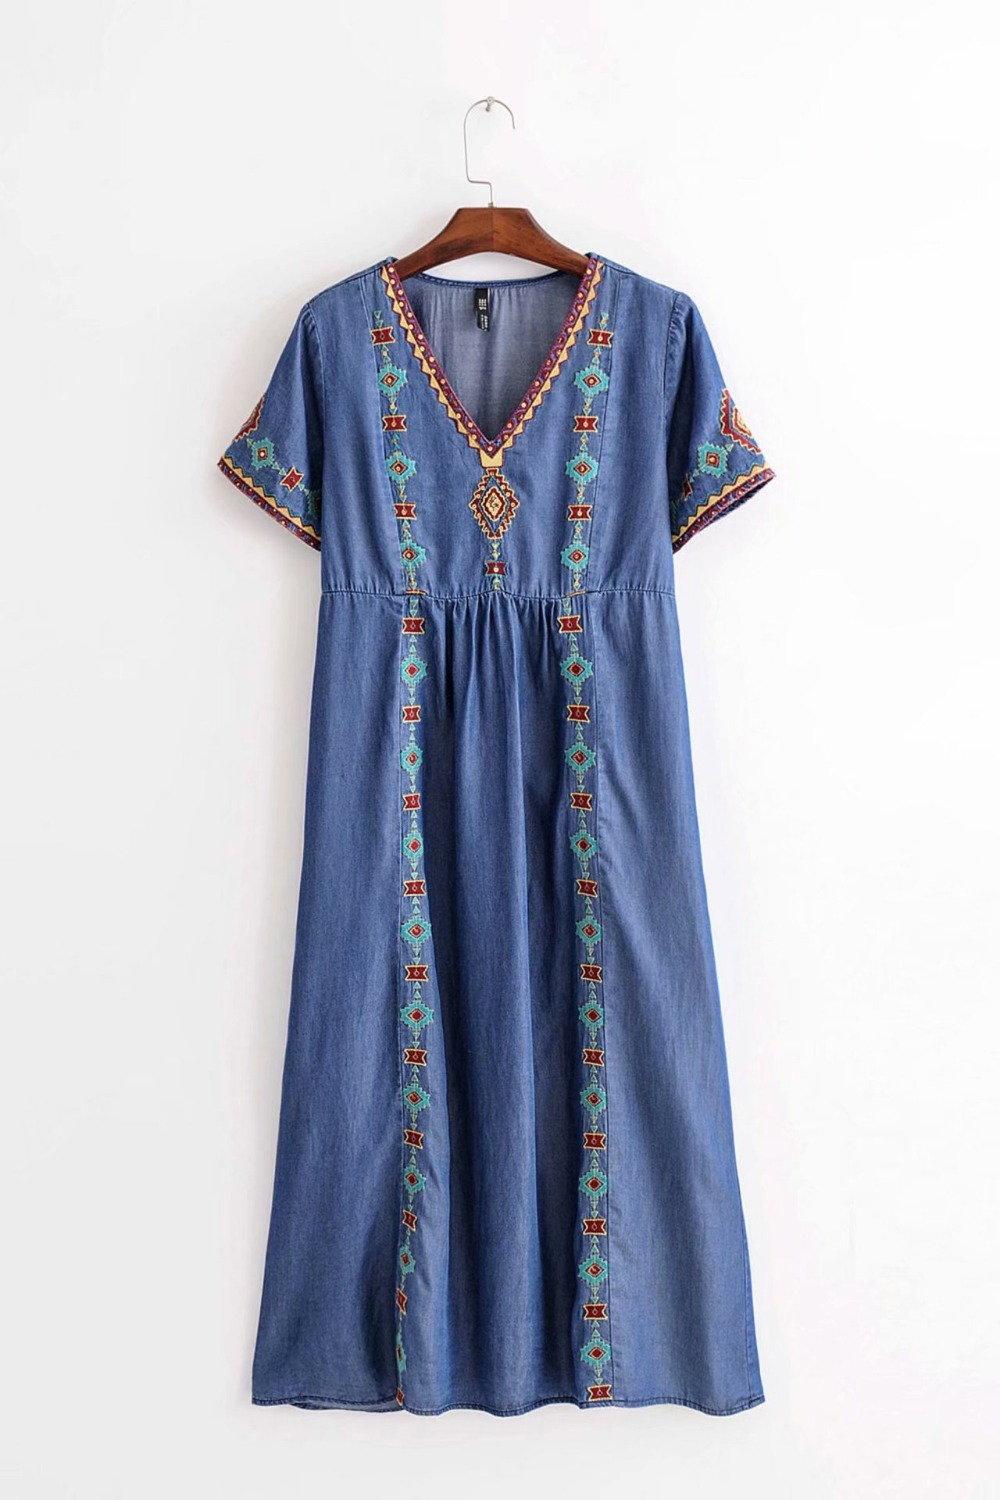 WISHBOP NEW 2018 Woman Blue Denim Embroidered Sequined detail Midi dress V  neck Short Sleeves-in Dresses from Women s Clothing on Aliexpress.com  fada38fbb4f3